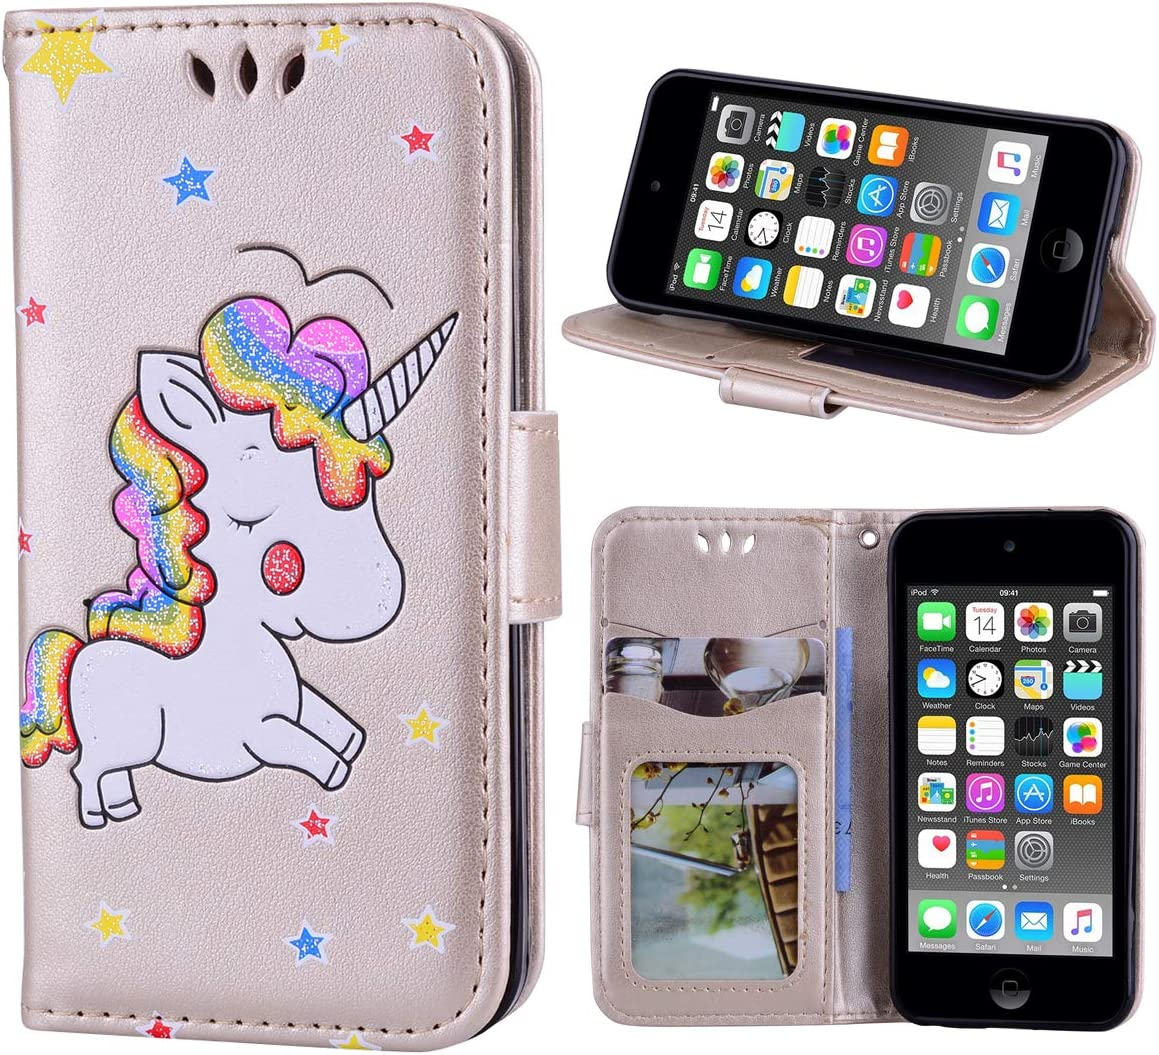 quality assurance Wallet Case for iPod Touch 6 7 Stan Cover case Leather PU flip Special Campaign